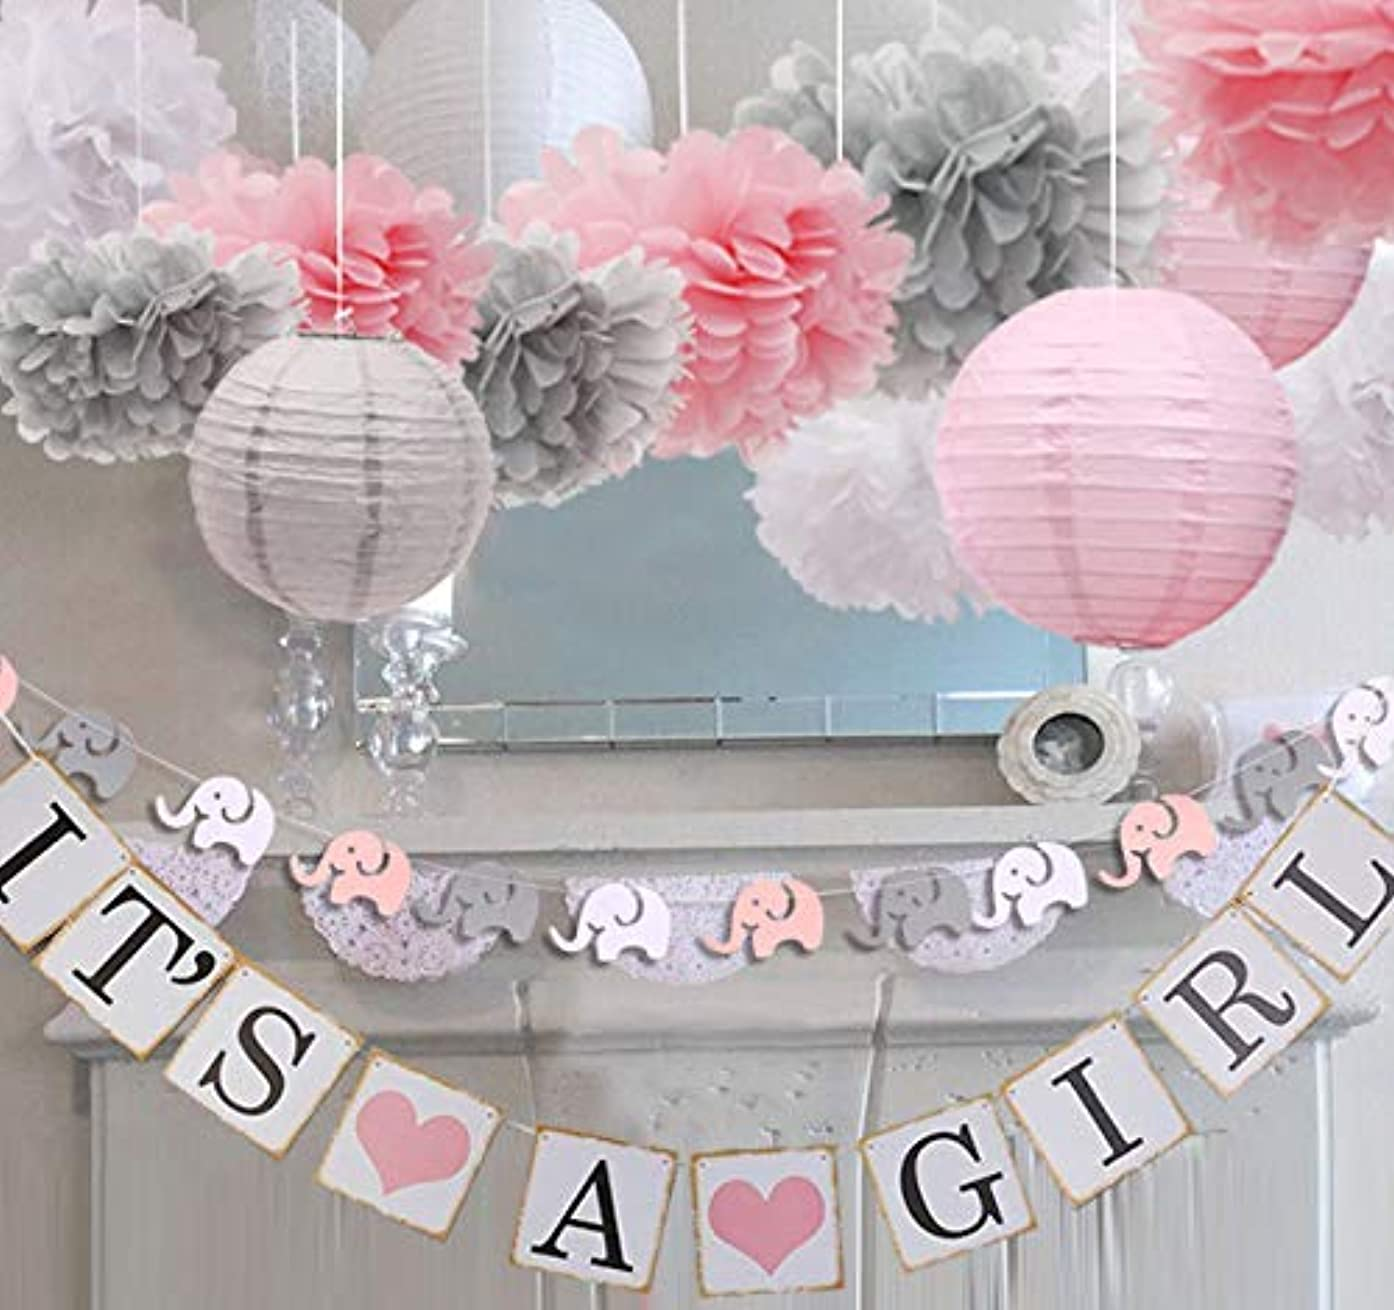 luckylibra Girl Baby Shower Decorations, It is a Girl Banners Elephant Garland & Paper Lantern Paper Flower Pom Poms (Pink White Grey)